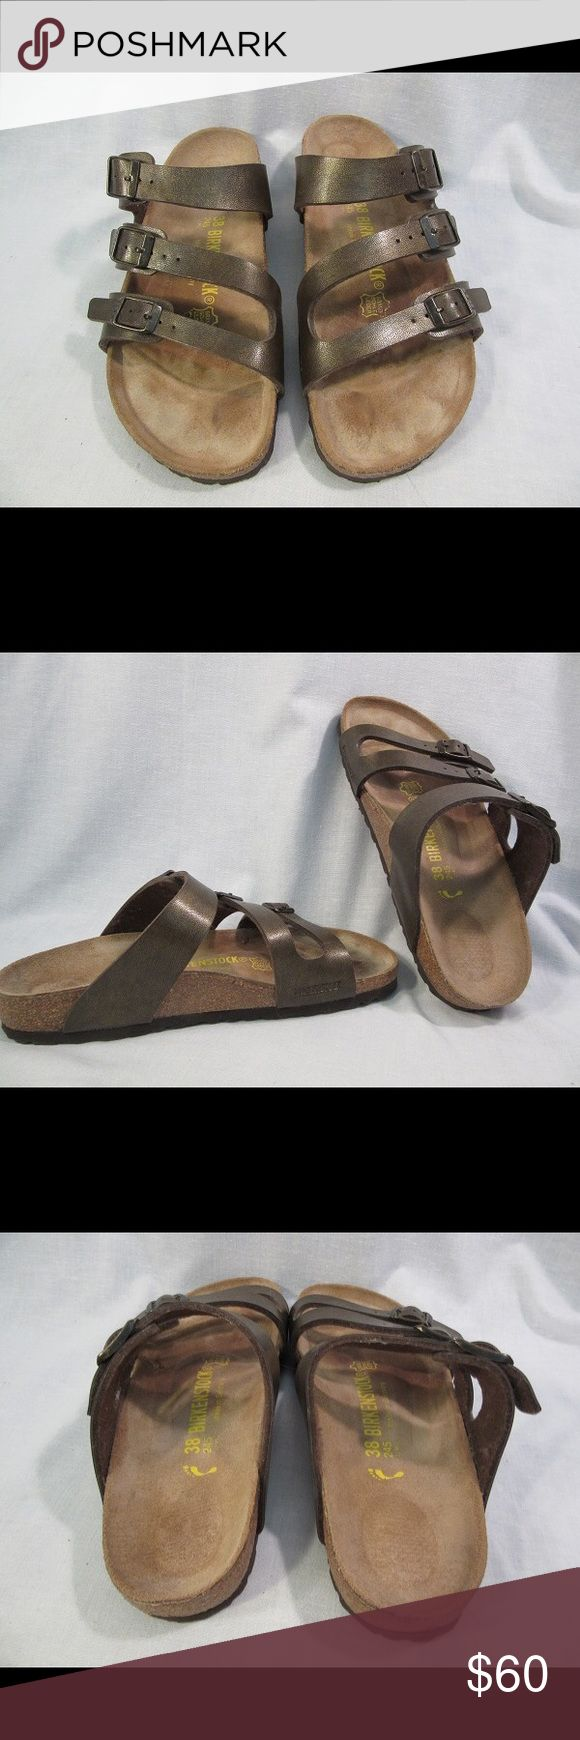 """Birkenstock Gold Bronze Metallic 3 Strap Sandals This pair is metallic """"golden bronze"""" (they were sold as """"gold"""" on QVC but host said they looked more bronze) leather. They have some gold flecks in the color but look more bronze. All 3,straps are adjustable. Closed footprint. I wore them once, onstage behind a podium, while emceeing (I took my heels off to be comfortable) so they were only worn indoors. They looked really great with my metallic bronze and black pantsuit.  Perfect for anytime…"""